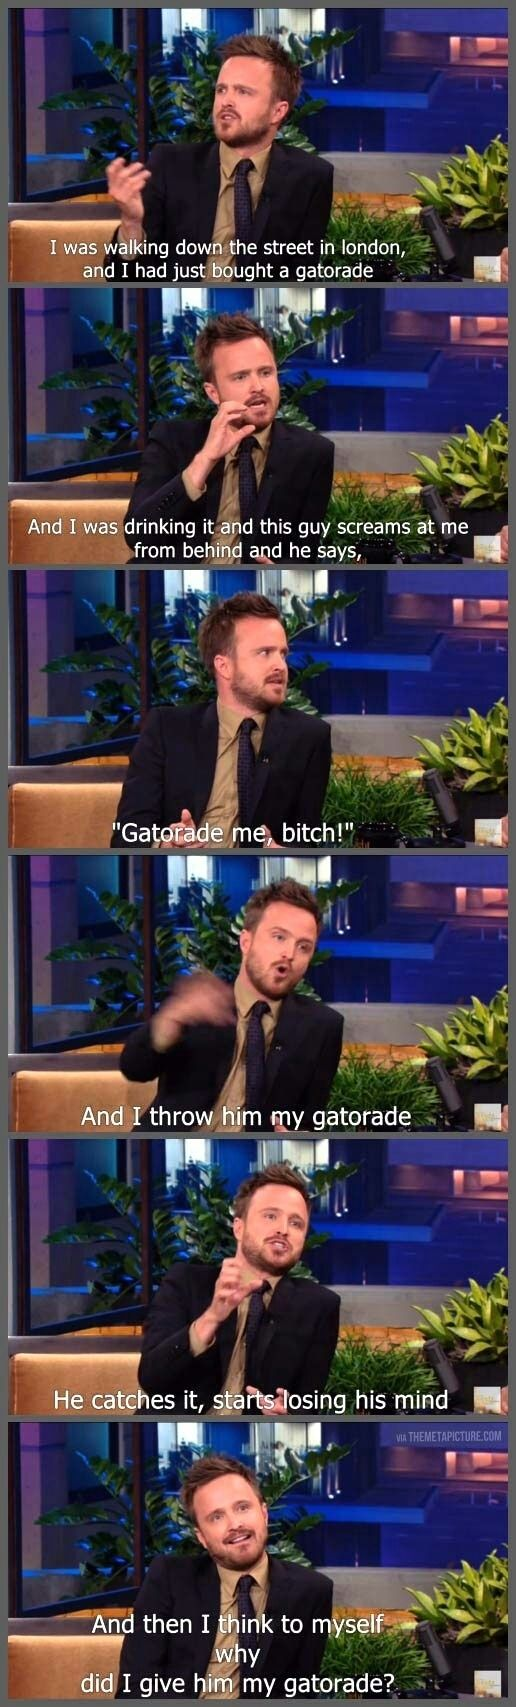 Reasons Why Aaron Paul was the King of 2013-- He selflessly gave a stranger his gatorade because they asked: